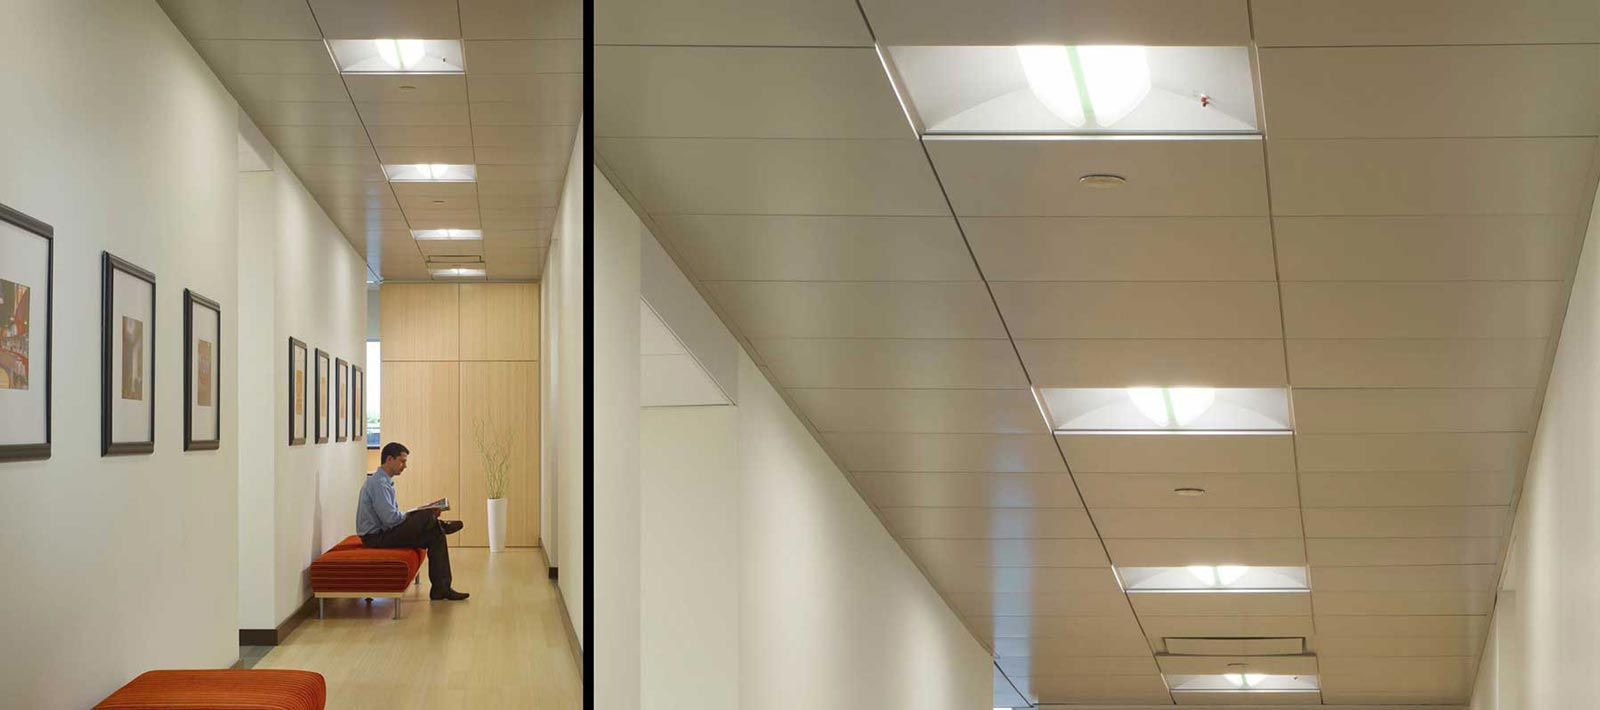 Focal Point 1 & Recessed | Focal Point Lights